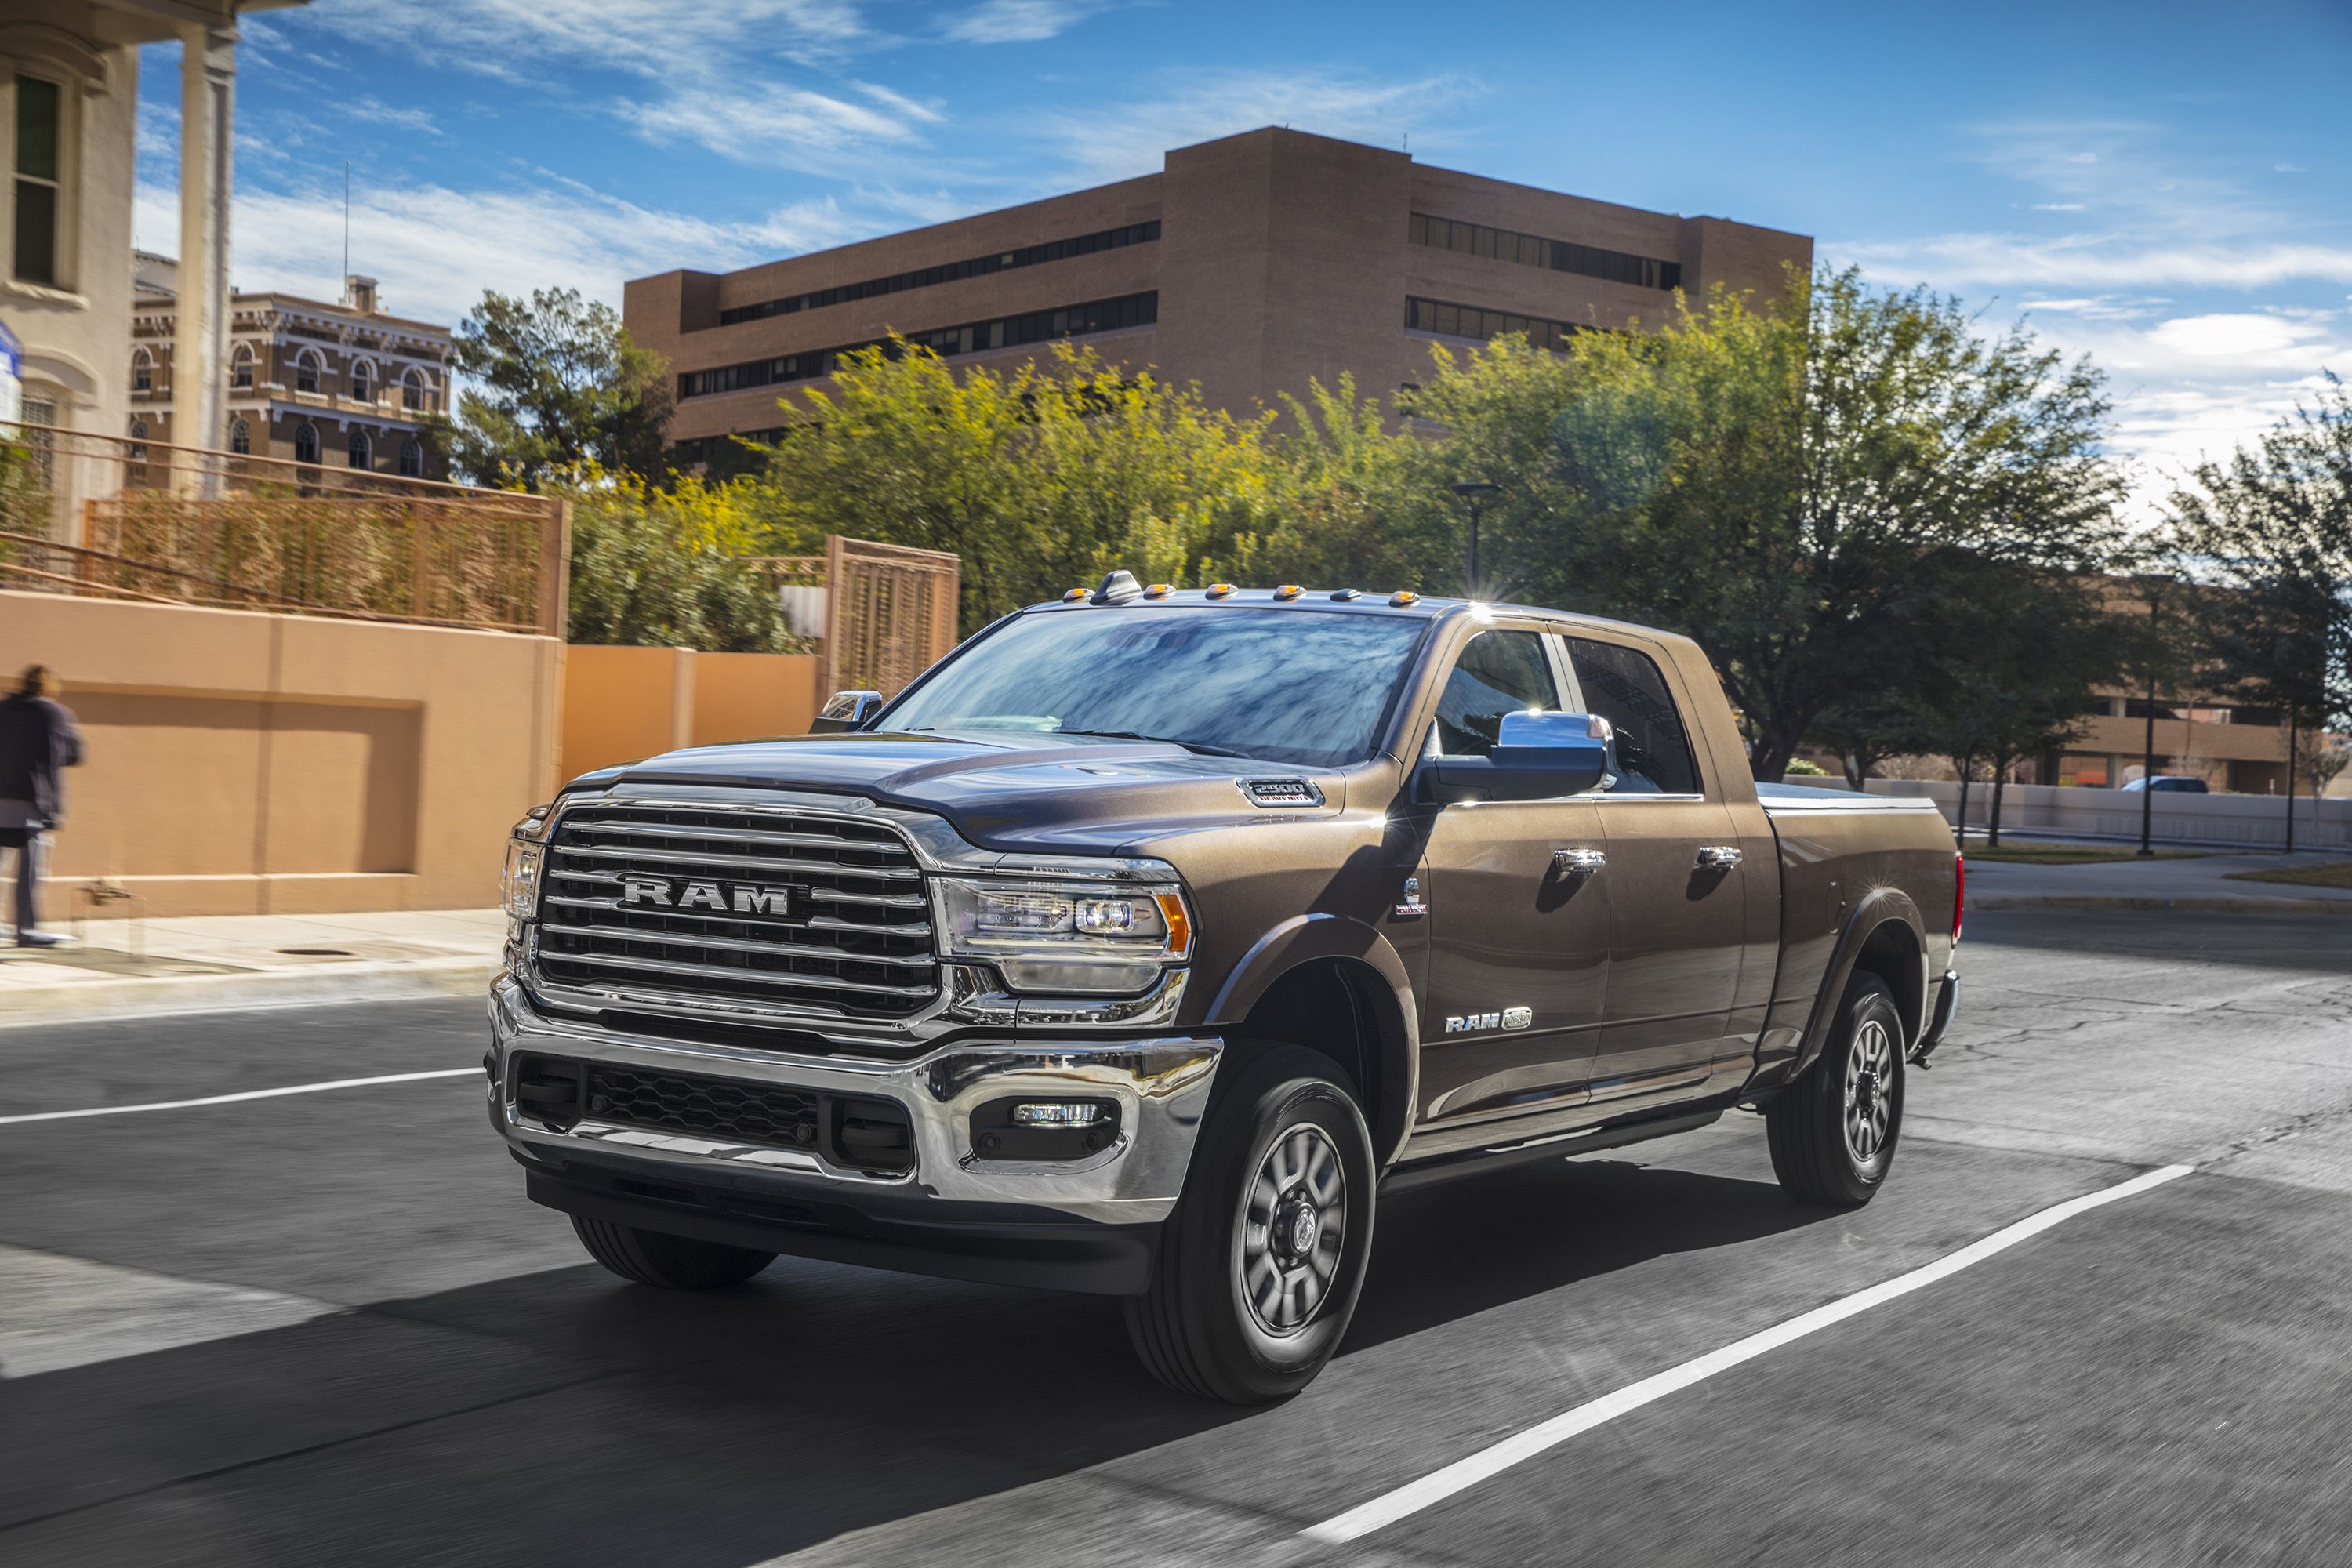 2019 Ram Hd Pickup Pricing 2500 3500 And Power Wagon Prices